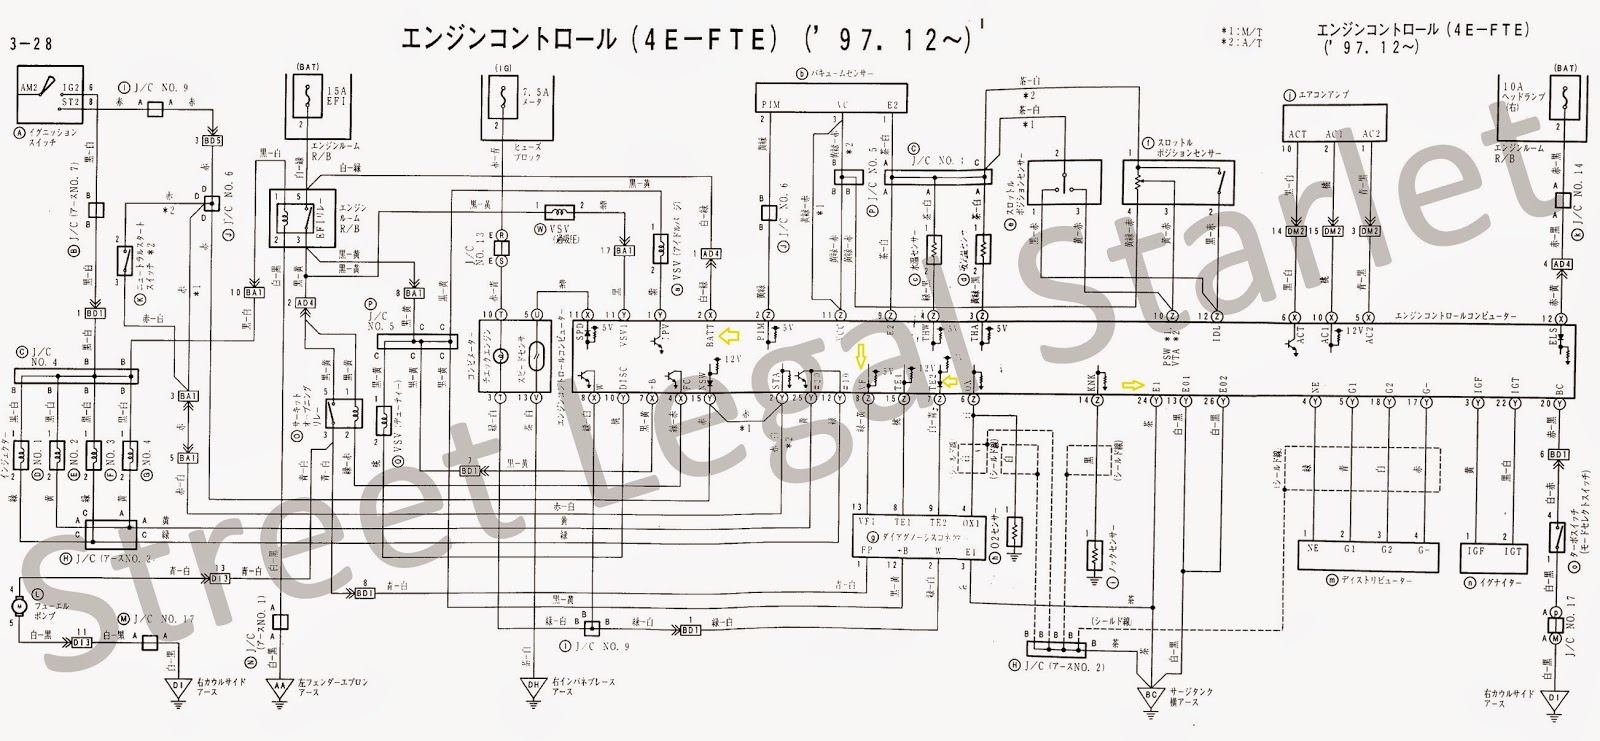 4age 16v Distributor Wiring Diagram Free Download Club4ag Forum Topics Electric Fan On Fuse Board 20v Somurich Com Toyota Corolla 4a Engine At